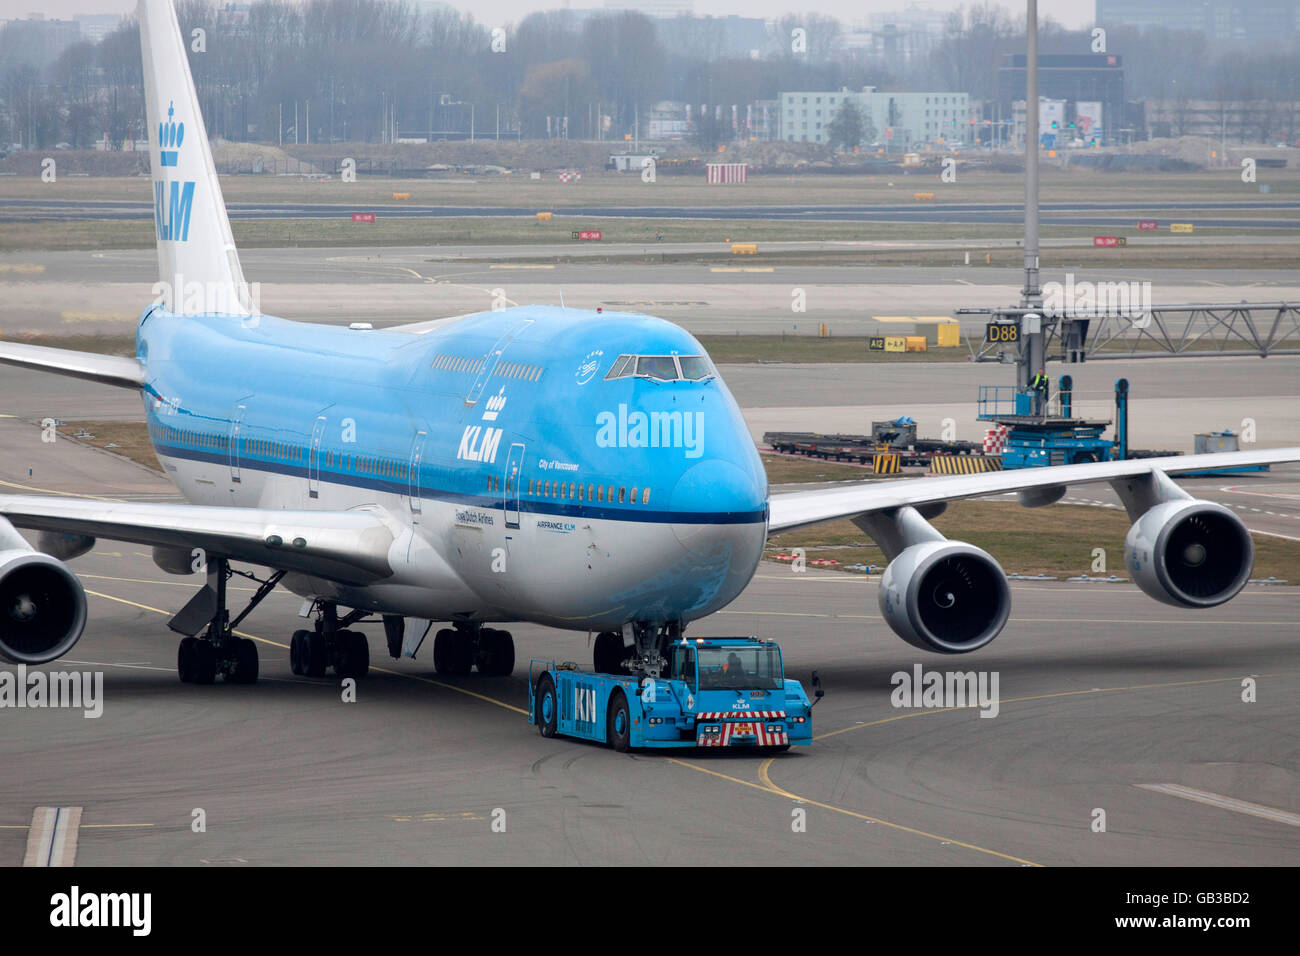 AMSTERDAM, THE NETHERLANDS - Maart 15, 2015  Boeing 747 just arrived on our way to the gate at the airport of Schiphol - Stock Image